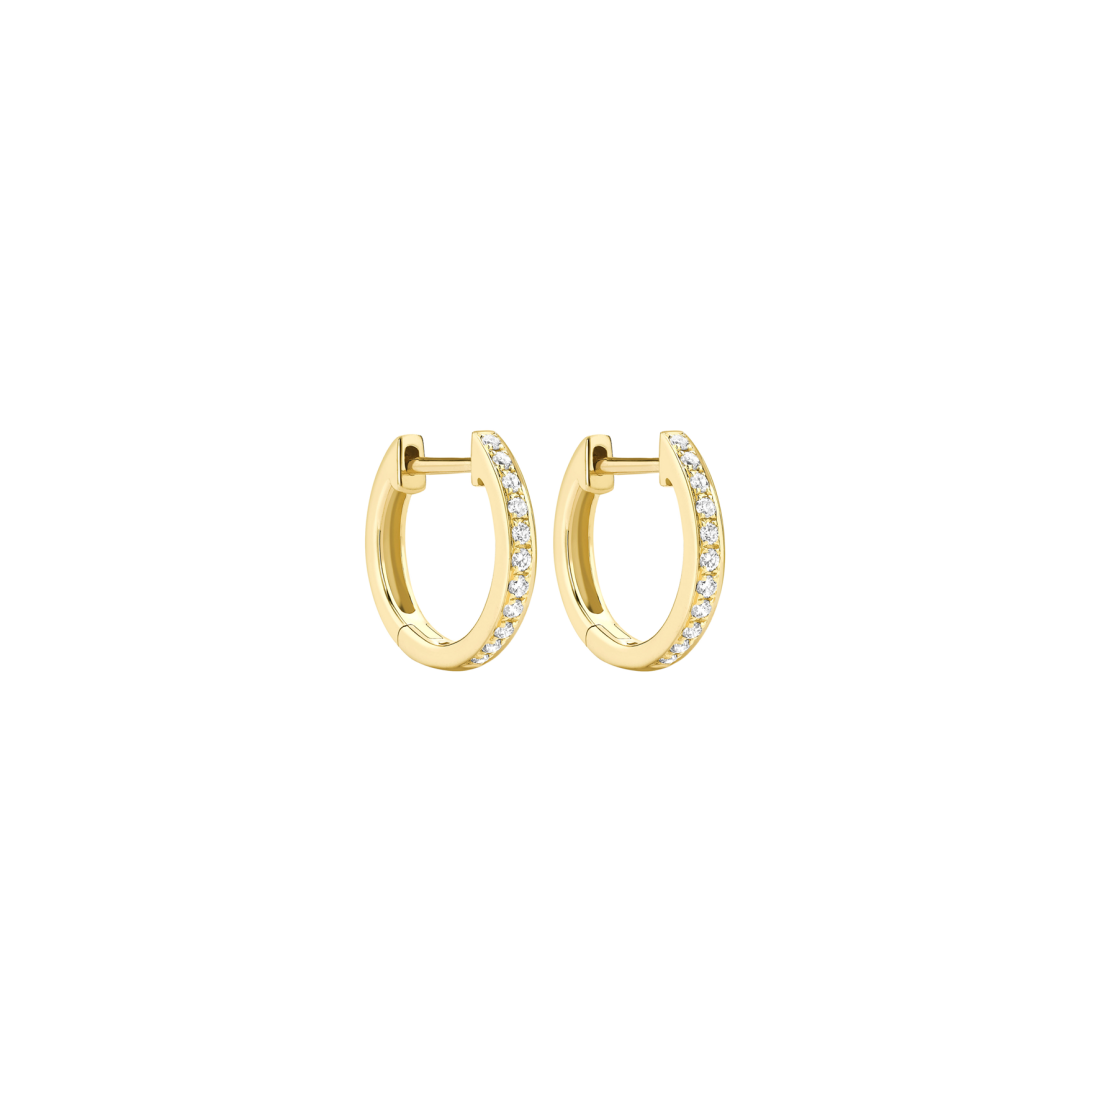 Kiki McDoungh classic 18ct yellow gold and diamond hoops